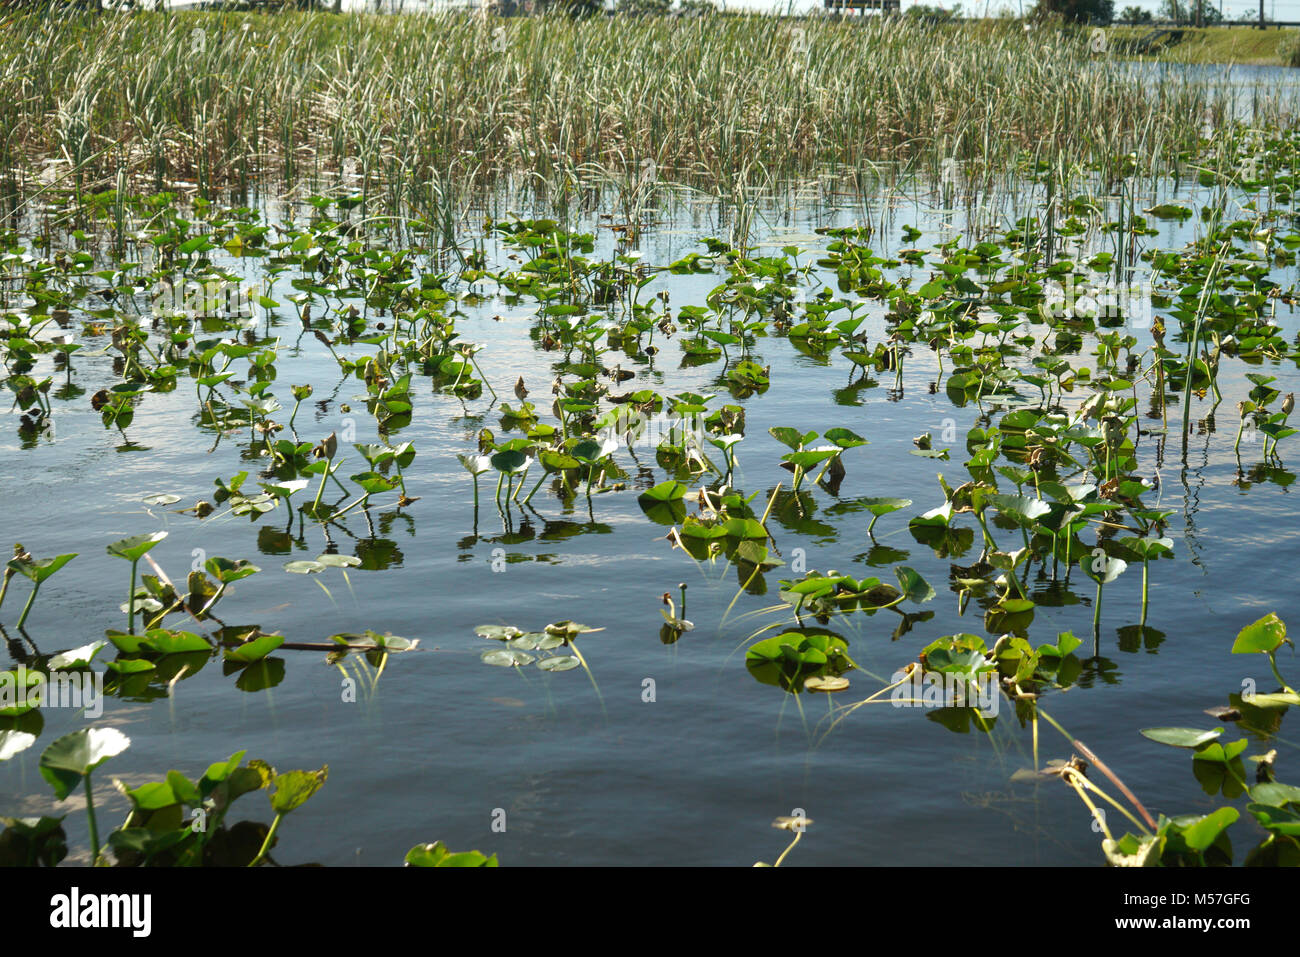 Seagrass Everglades Park, Fort Lauderdale, FL - Stock Image